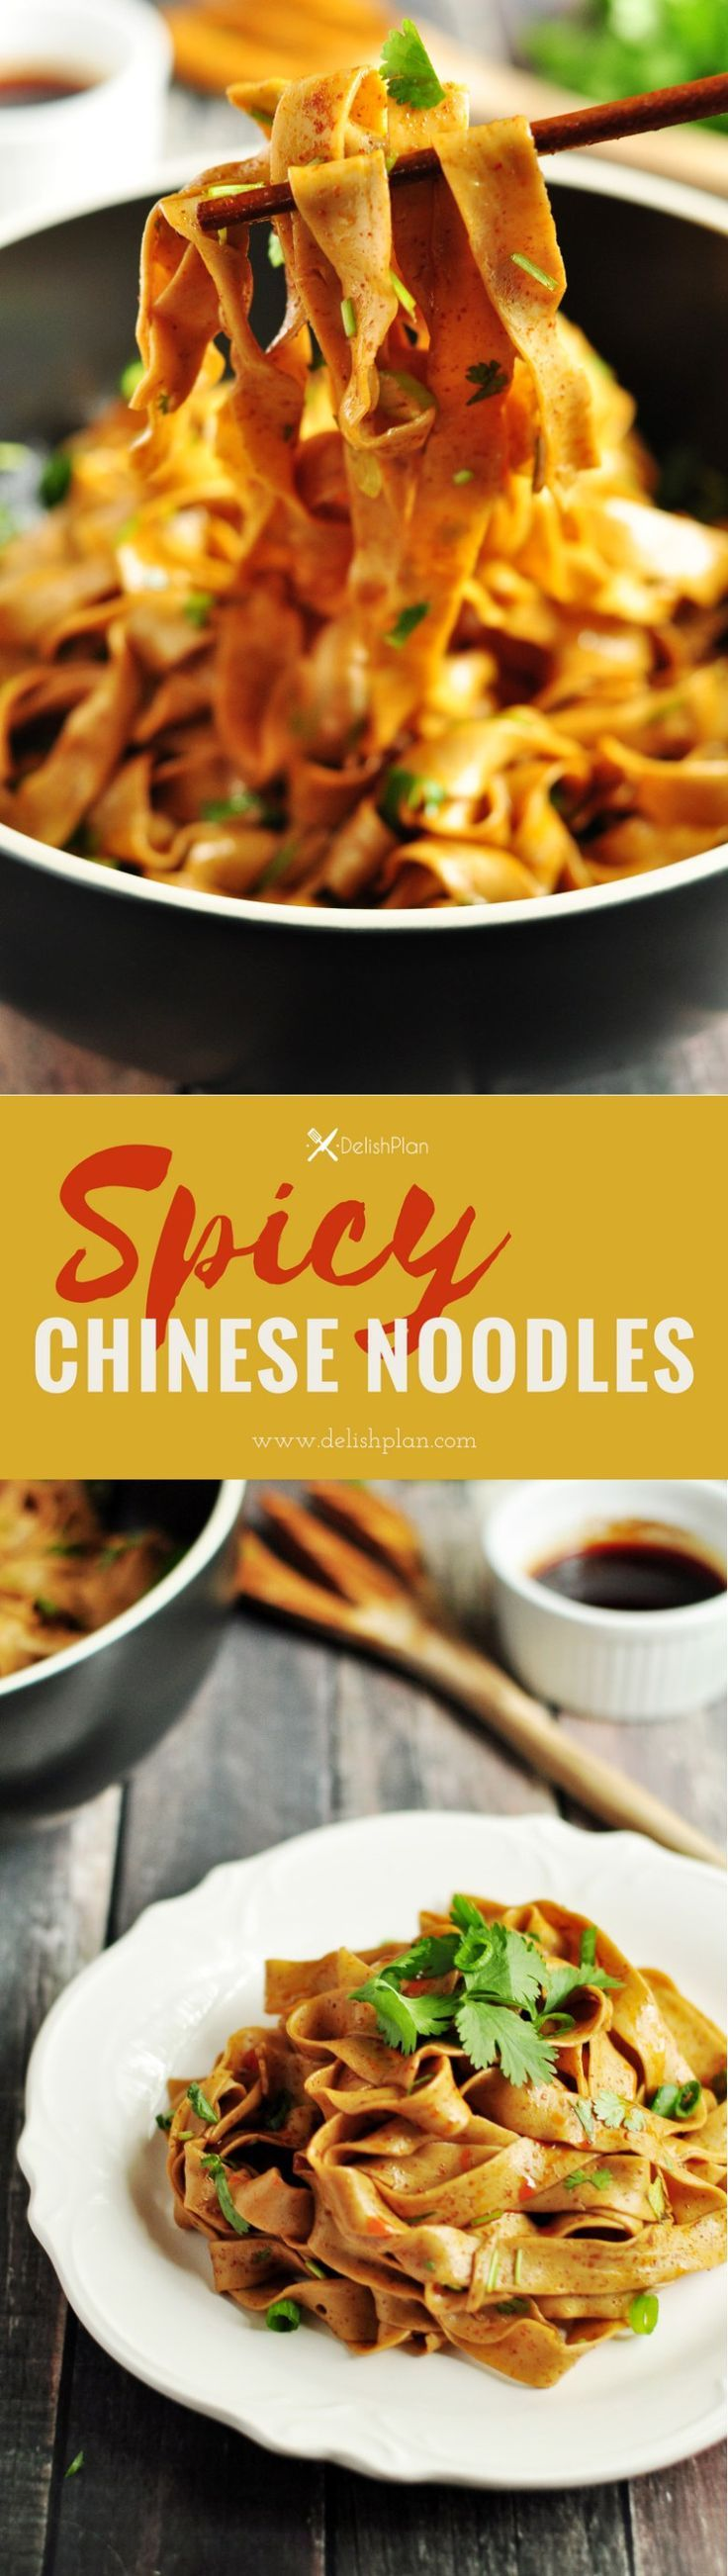 Spicy Chinese Noodles. These mouthwatering spicy Chinese noodles are the most savory and irresistible noodles you'll ever have. It only requires 6 ingredients. Make and slurp!